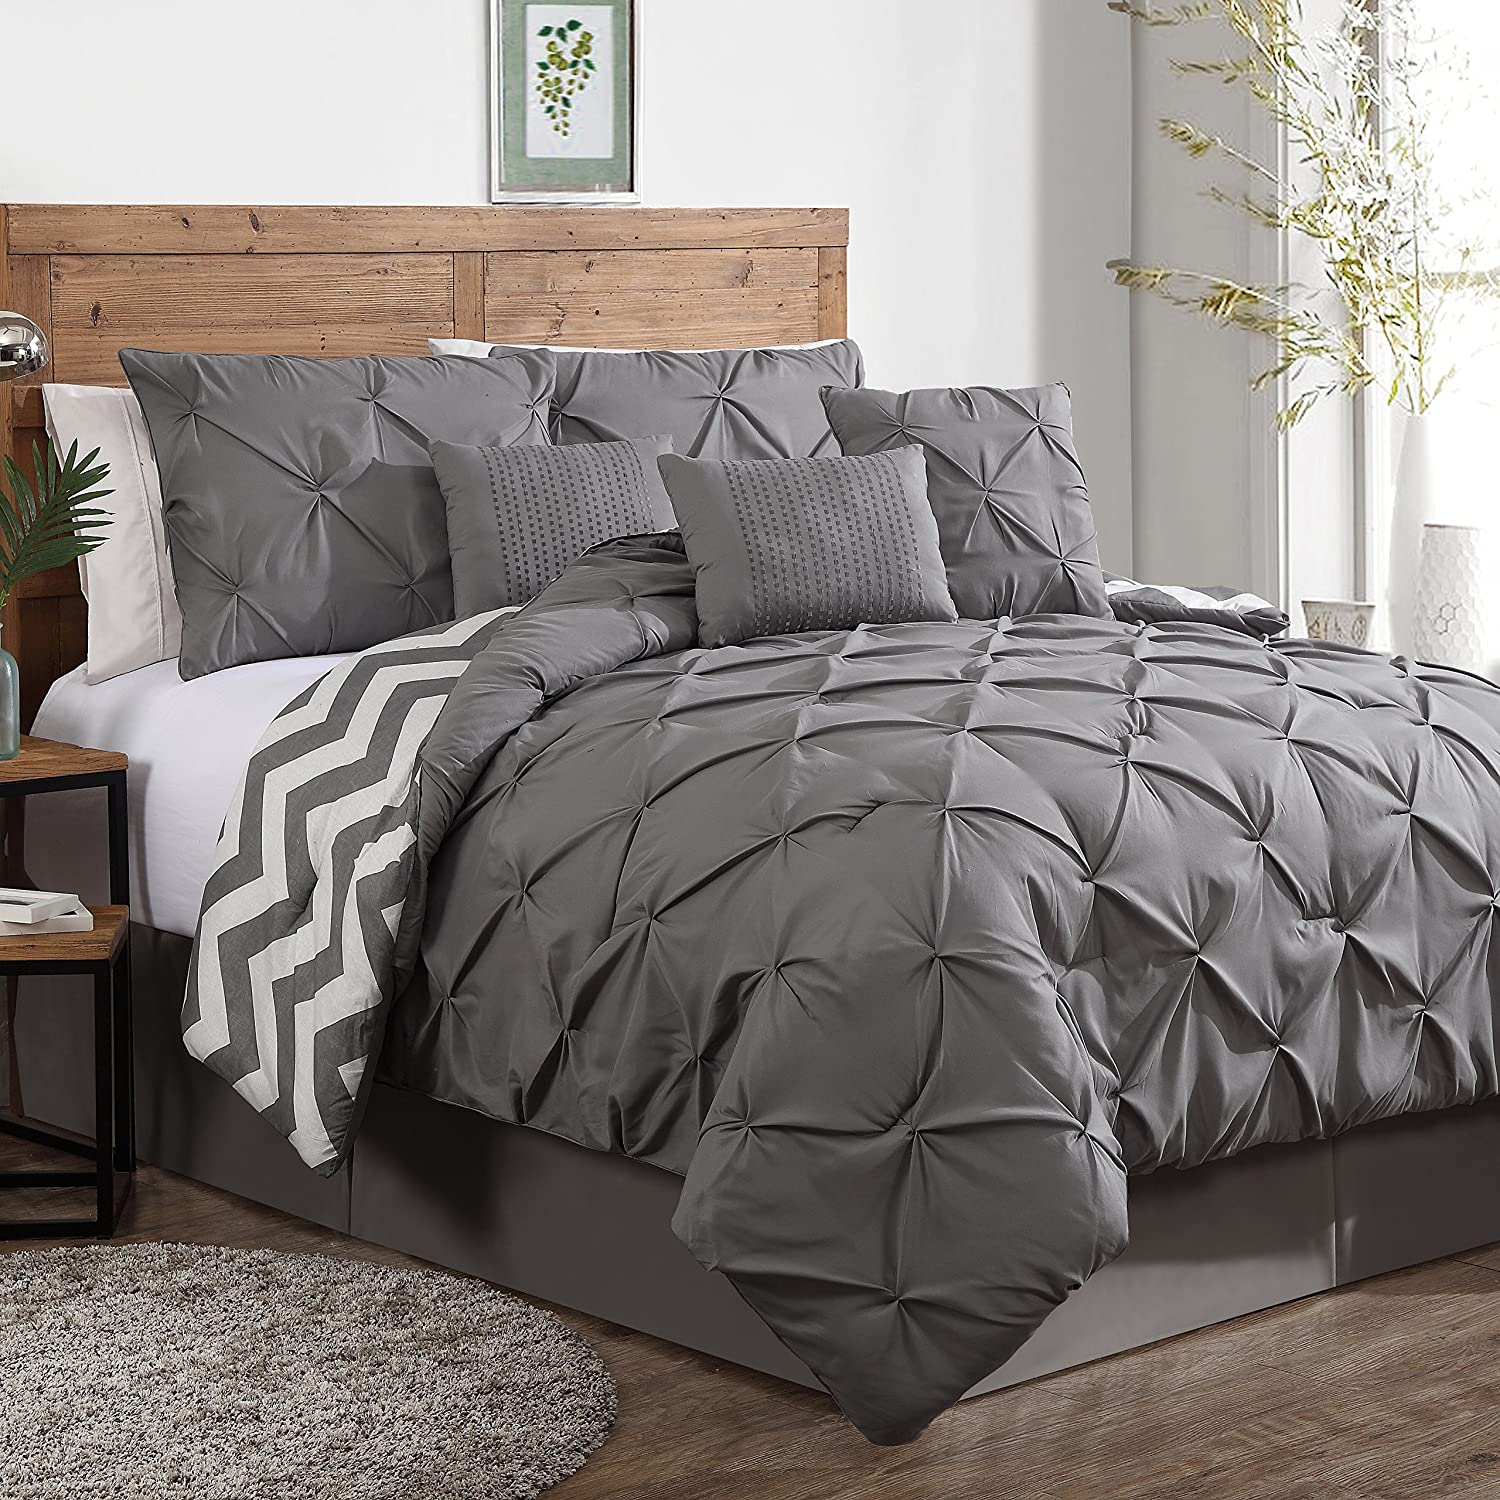 del set sets rio bed chocolate p light southwest comforter